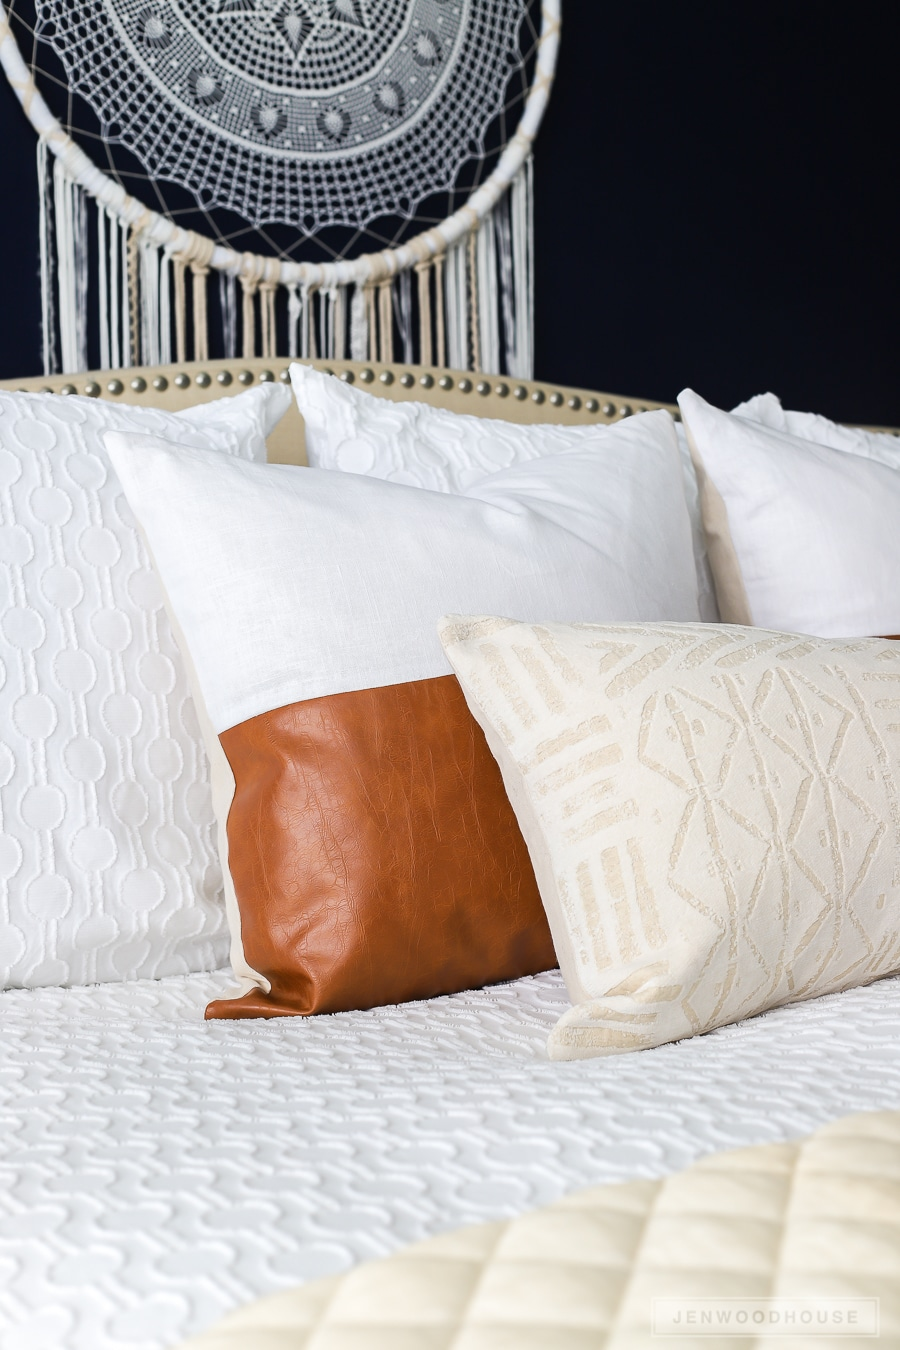 Freshen up your bedroom for Spring with these simple, seasonal touches